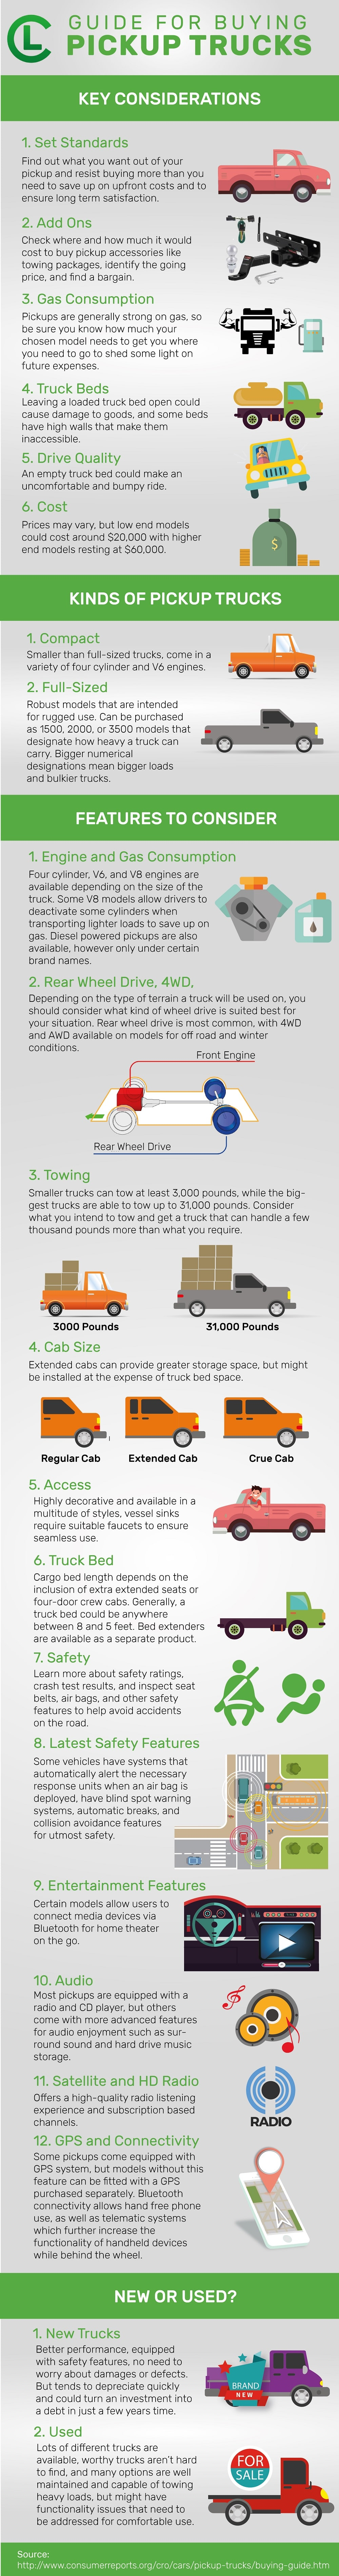 Guide For Buying Pickup Trucks